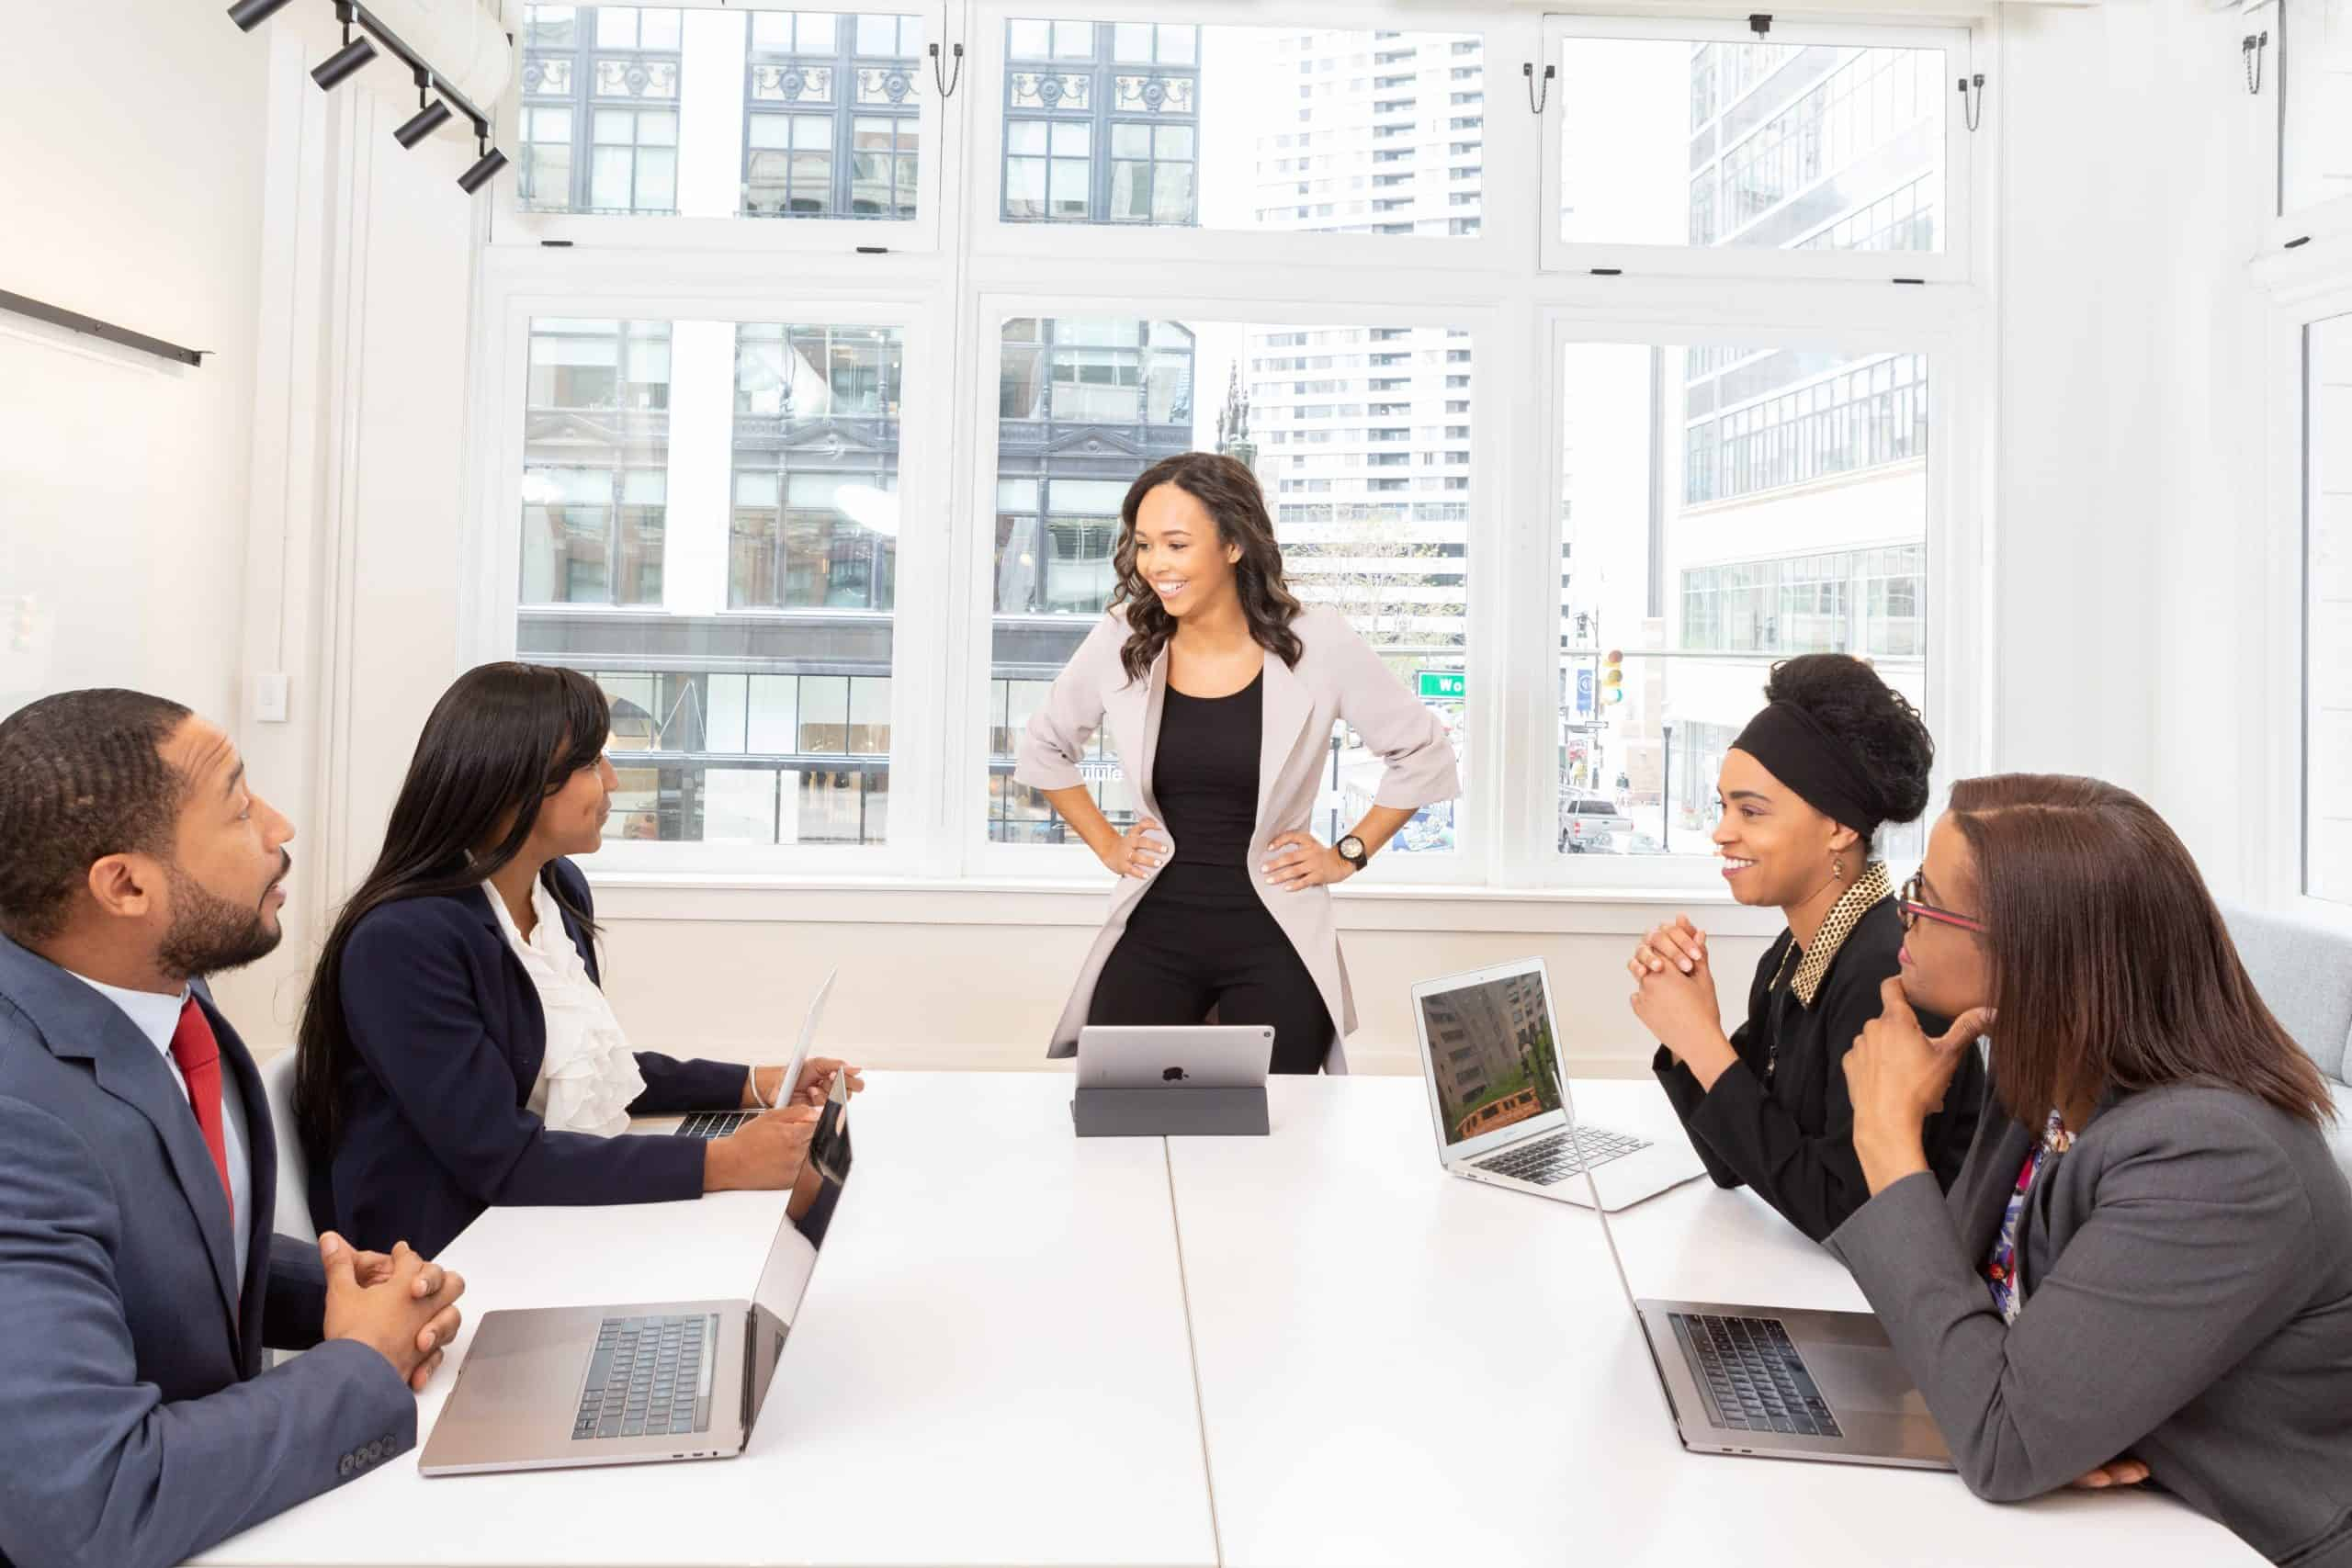 5 Tips for Leaders in the Workplace